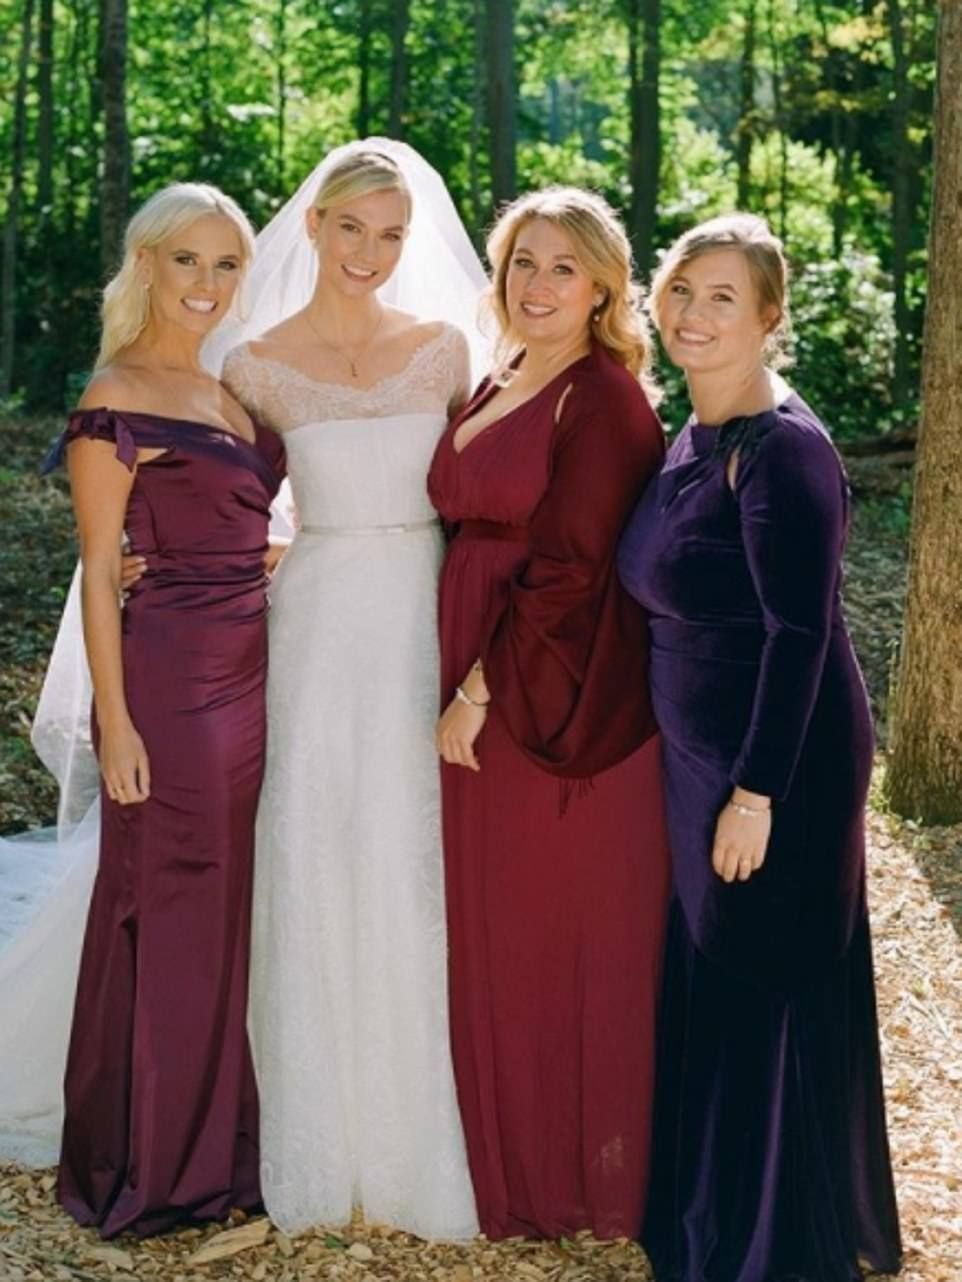 Bride Tribe She Posed With Her Three Sisters Kariann Kristine And Kimberly Who Acted As: Kimberly Perry Wedding Dress At Reisefeber.org